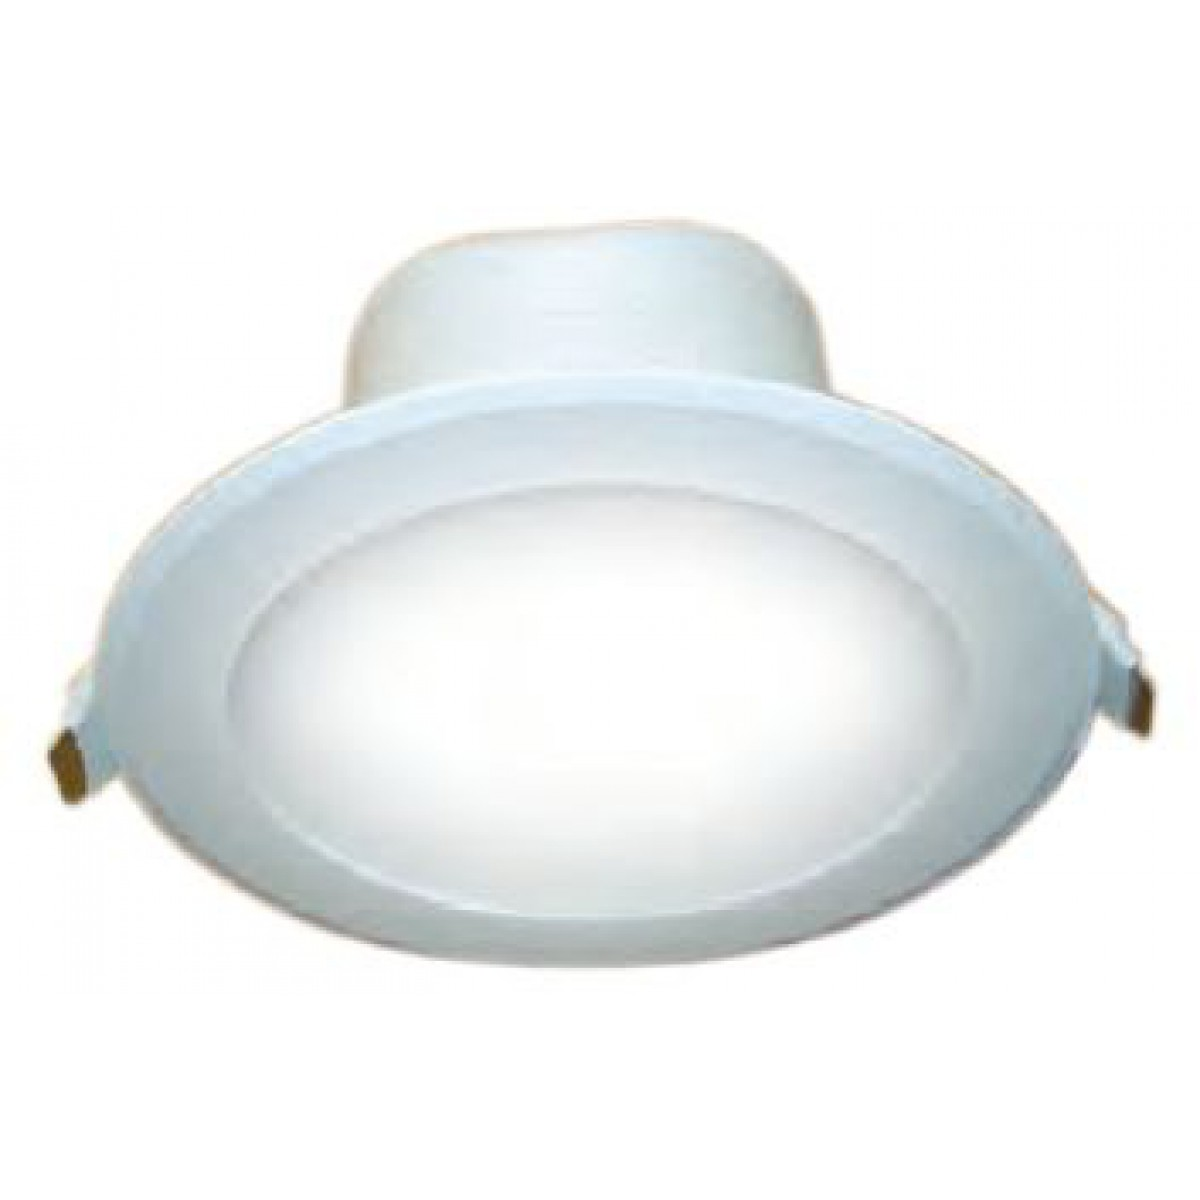 FARO INCASSO LED 25W 230V LAMPO LIGHTING - LAMPO SNC SYDNEY25WMC